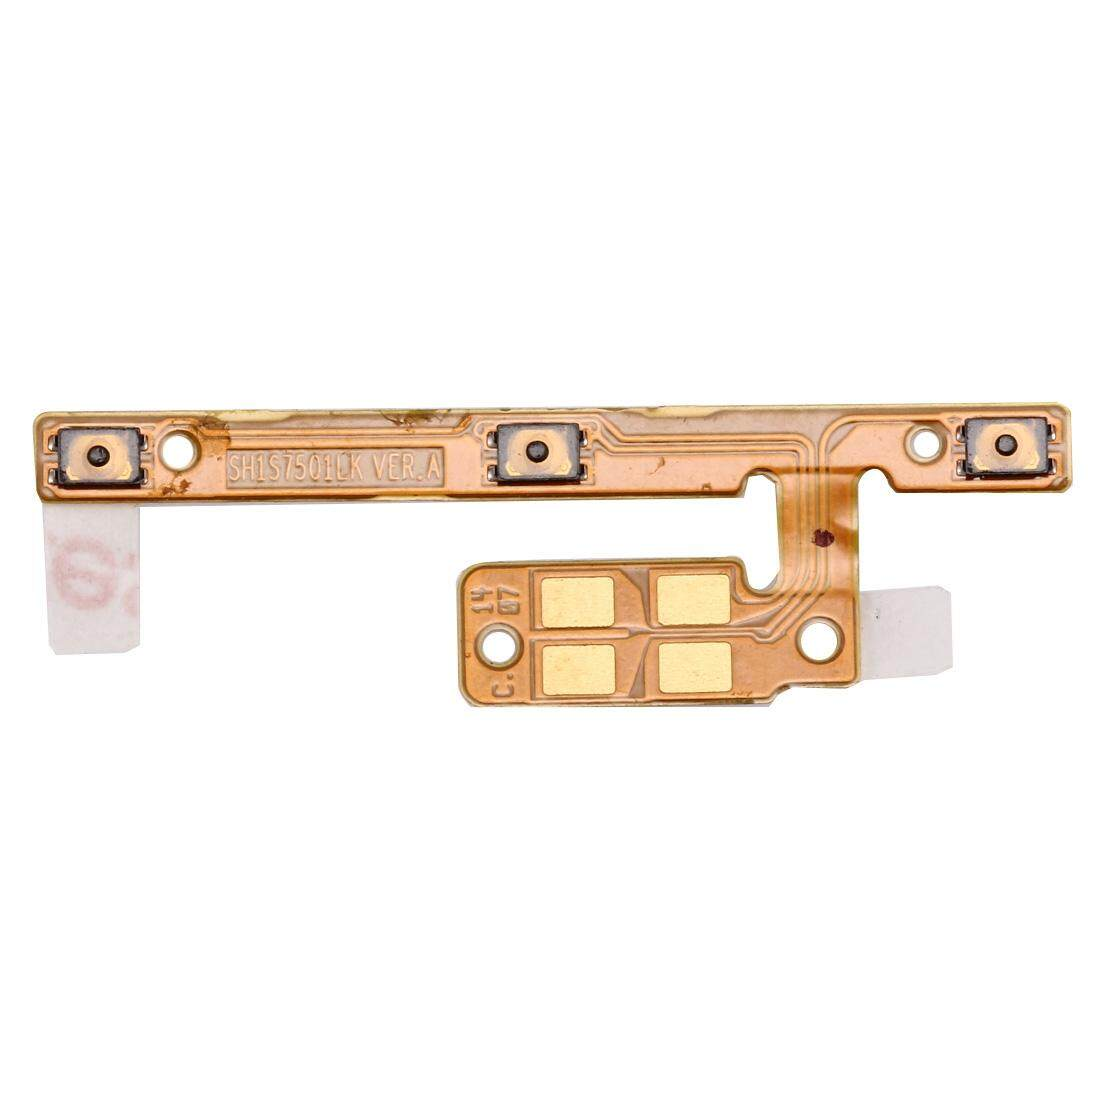 iPartsBuy For Huawei Mediapad X1 / Honor X1 Power Button and Volume Button Flex Cable - intl